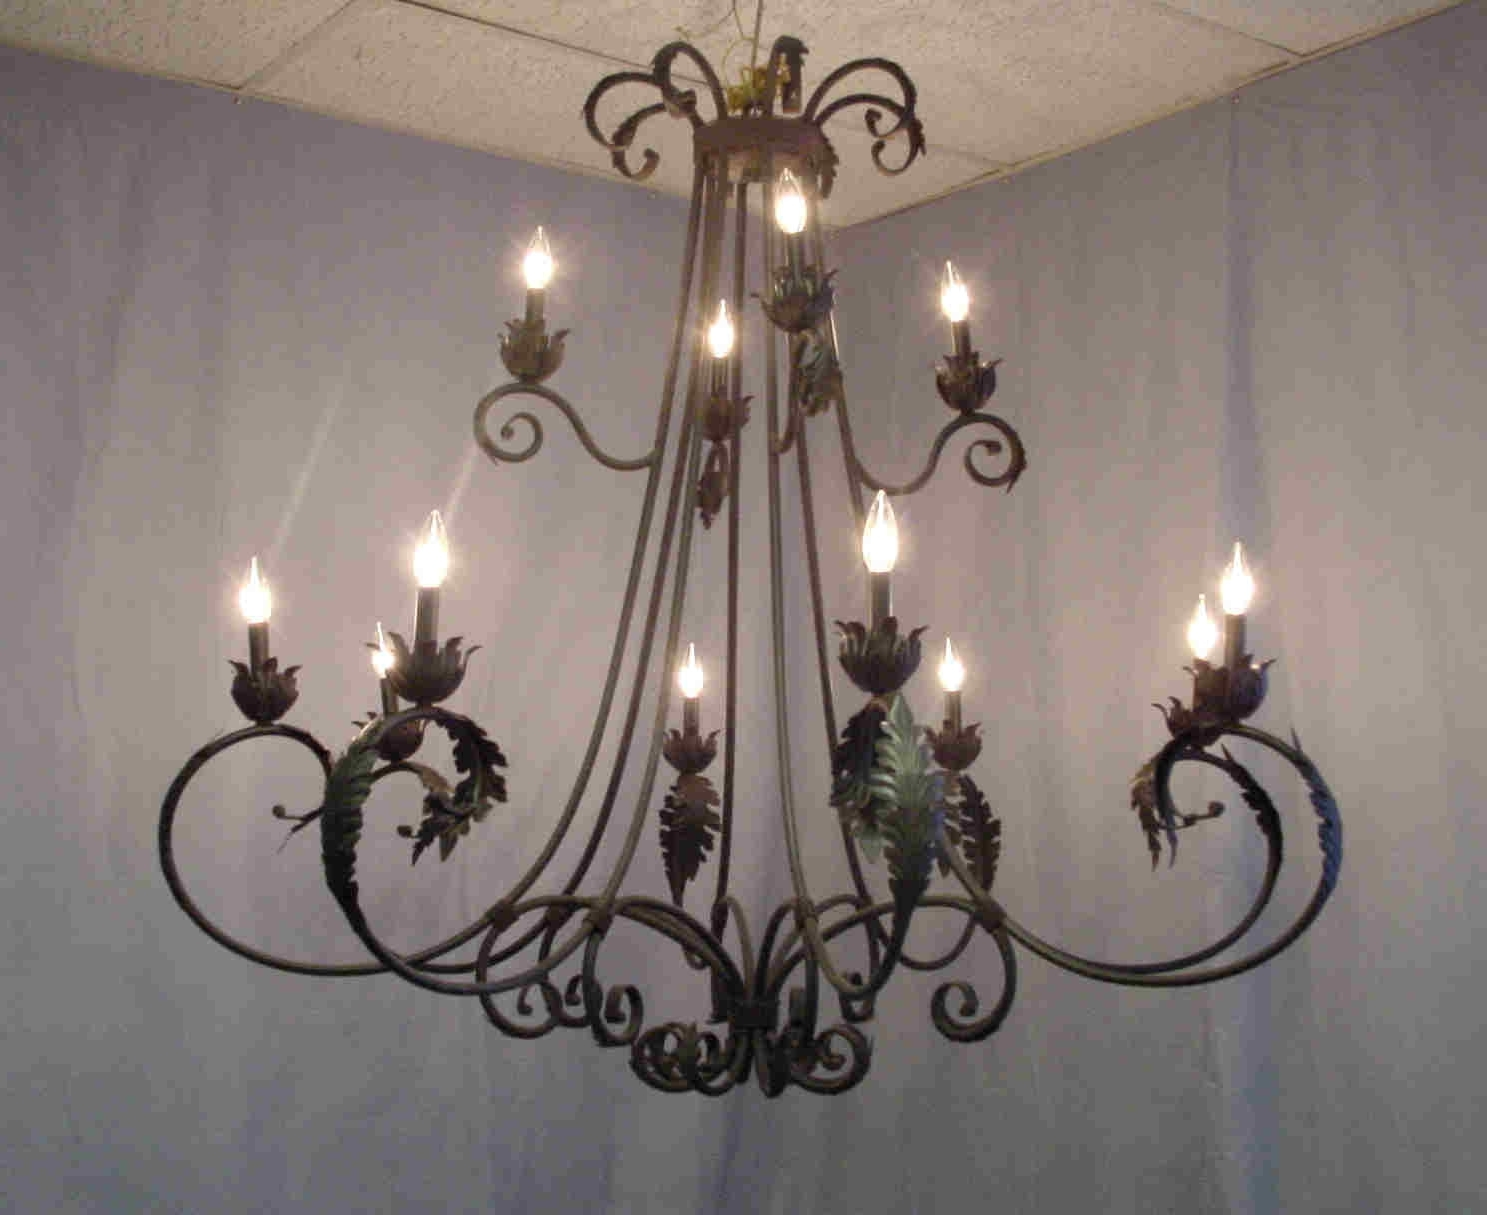 Vintage Wrought Iron Chandelier Intended For Well Liked Rustic Iron Chandelier Design Ideas — Fabrizio Design : Ideas For (View 2 of 20)